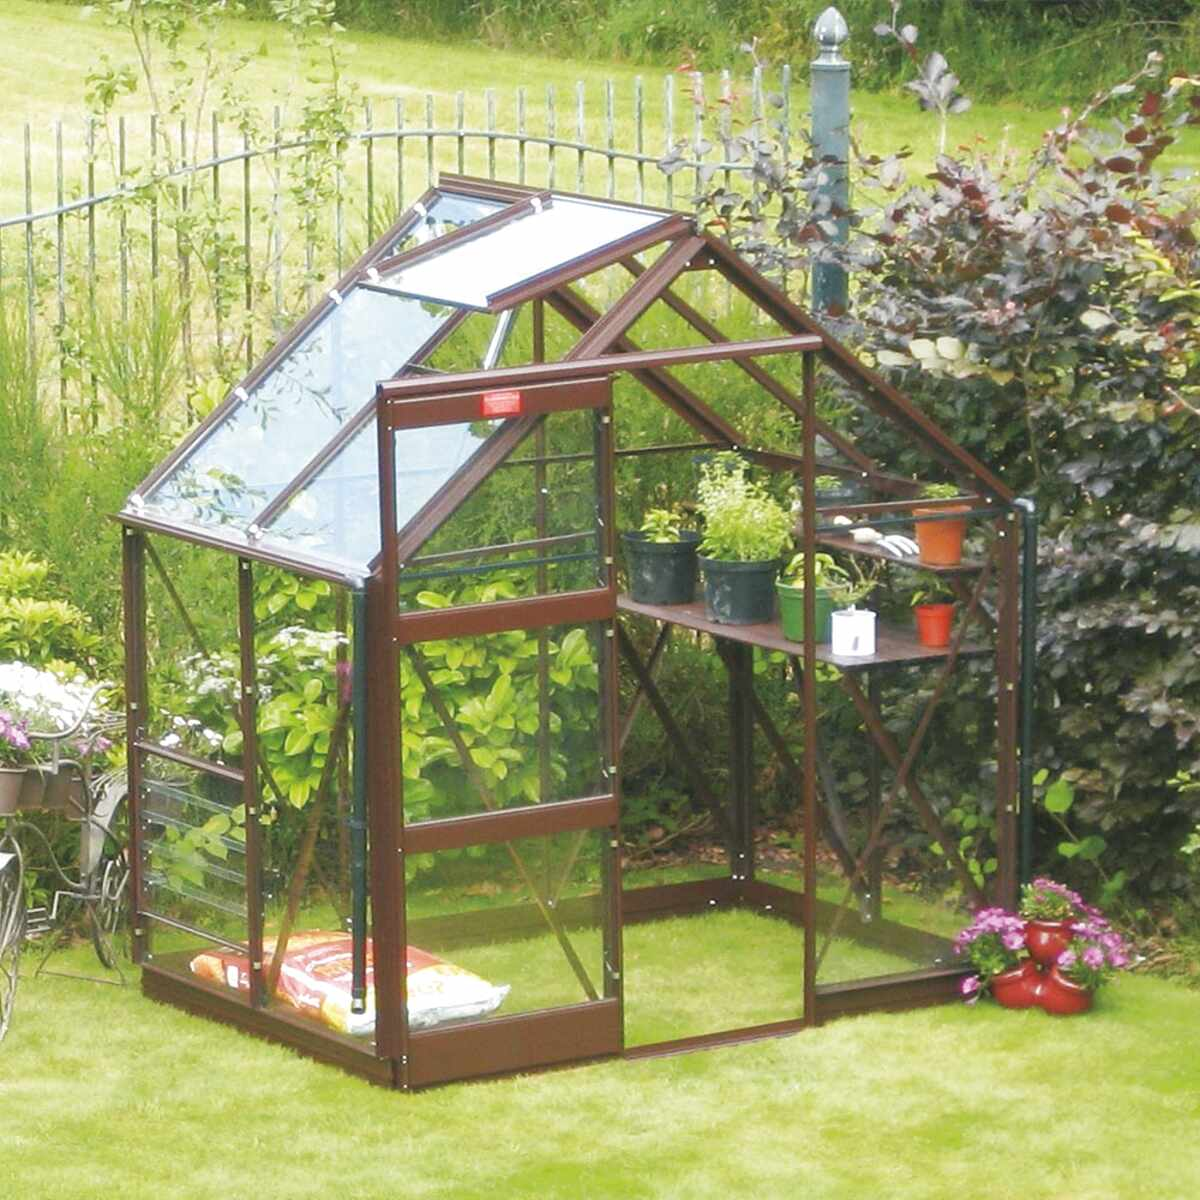 6x4 greenhouse for sale